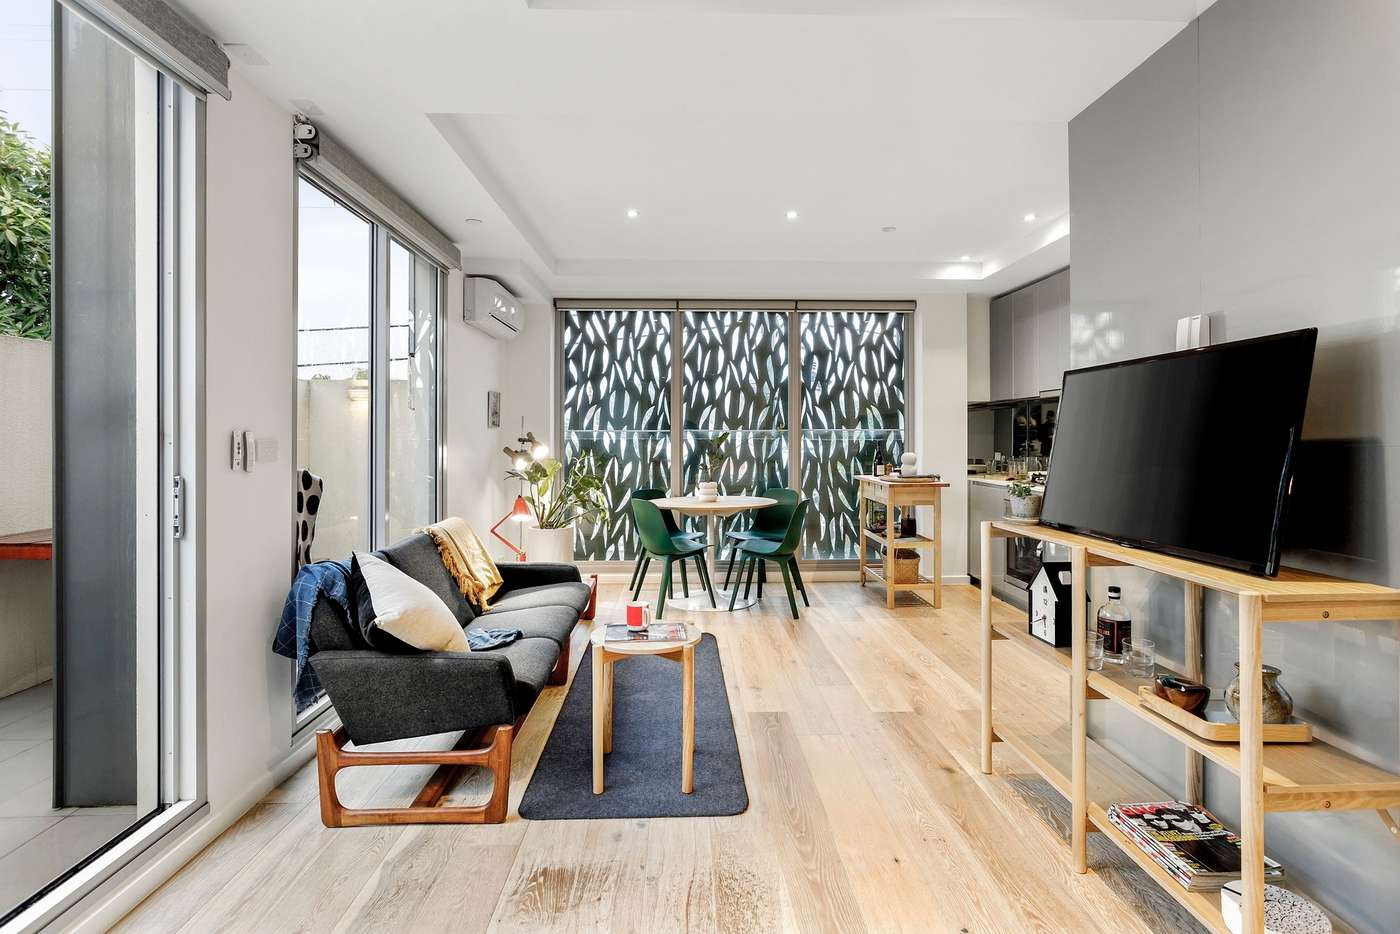 Main view of Homely apartment listing, 10/200 Westgarth Street, Northcote VIC 3070